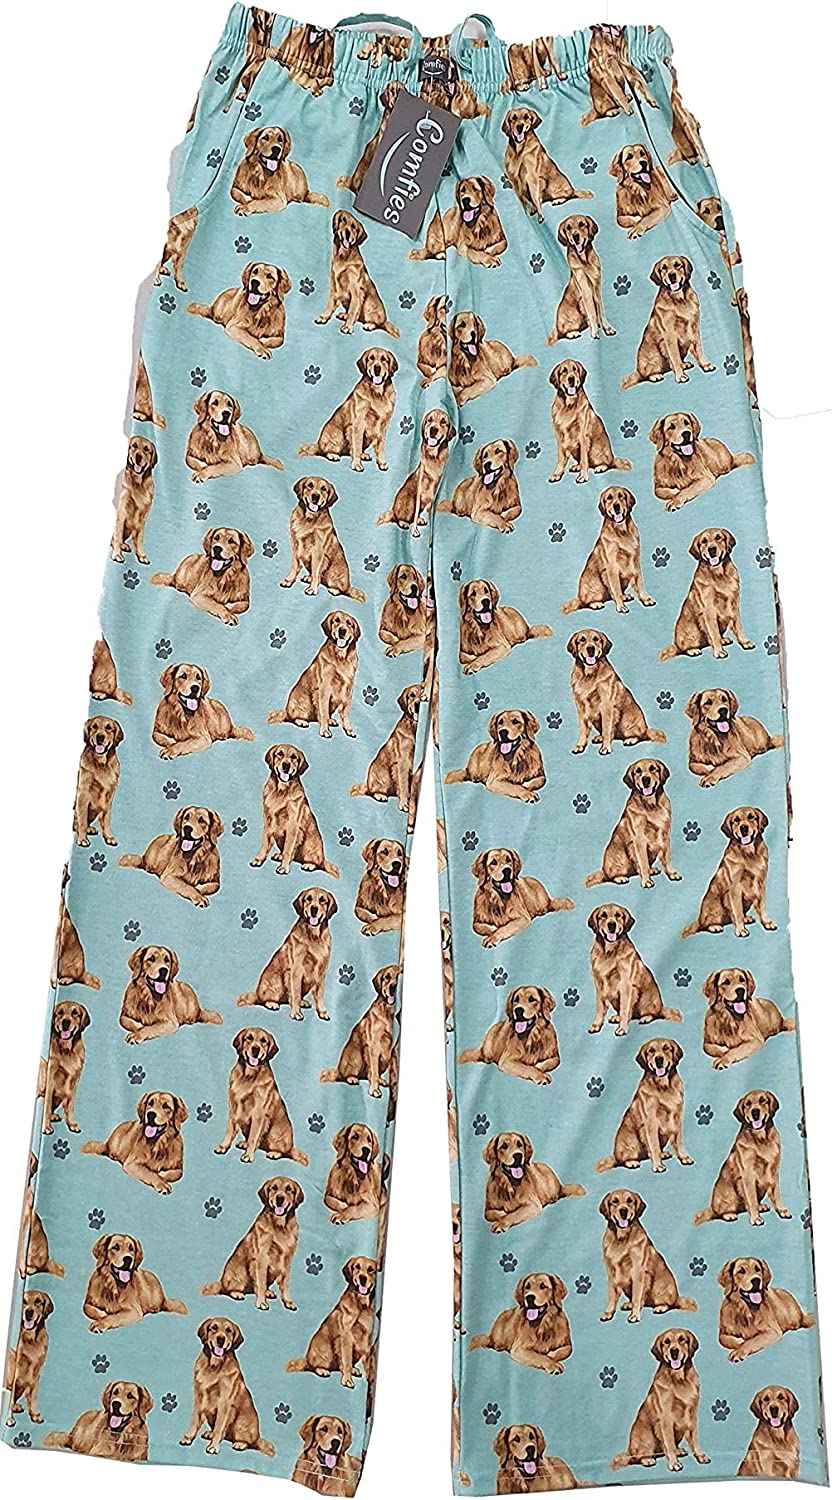 Soft Kids Pajama Pants Sleep On It 3-Pack Boys Pajama Pants 3 Pack